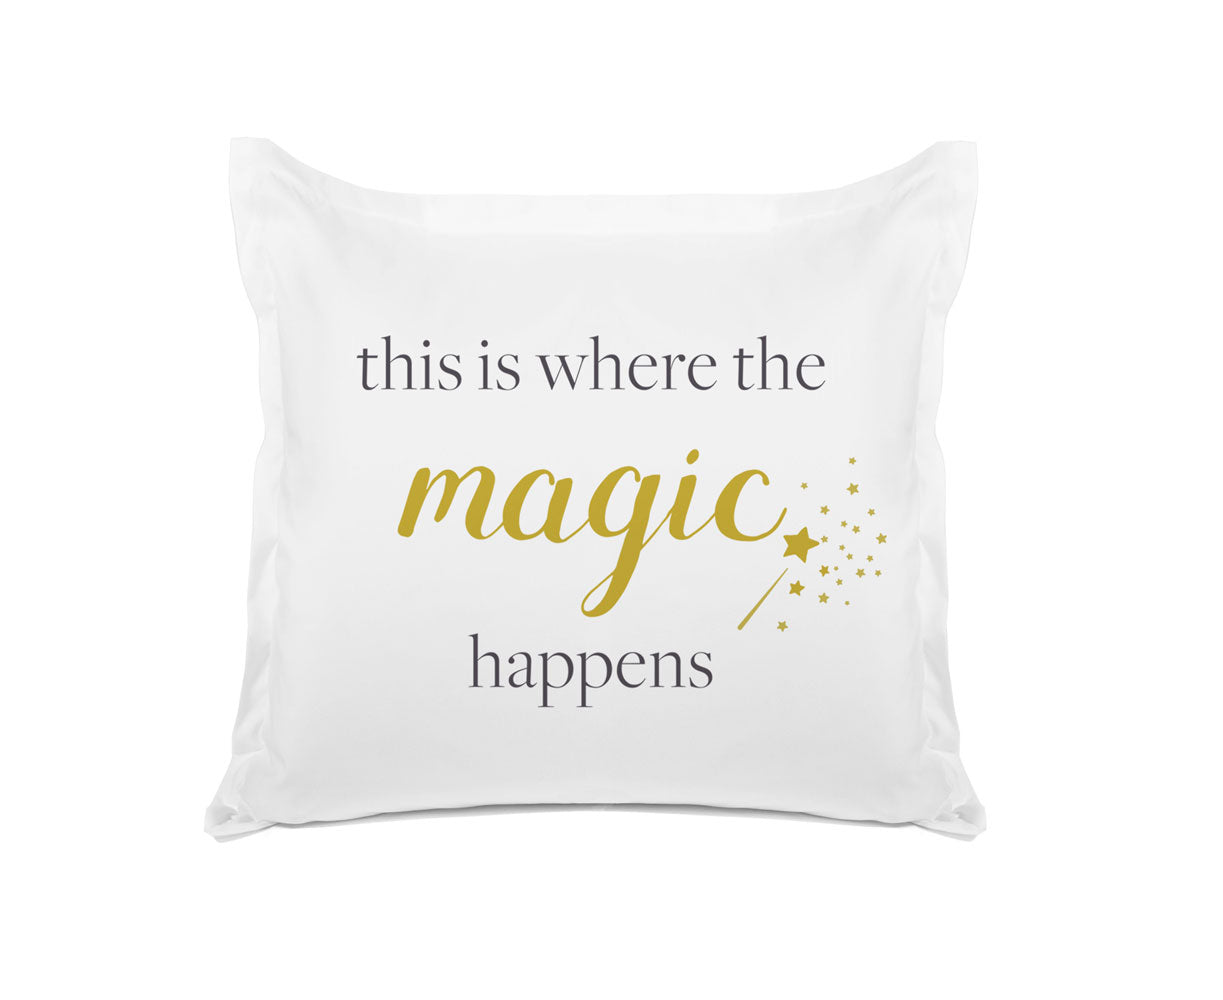 This Is Where The Magic Happens - Inspirational Quotes Pillowcase Collection-Di Lewis